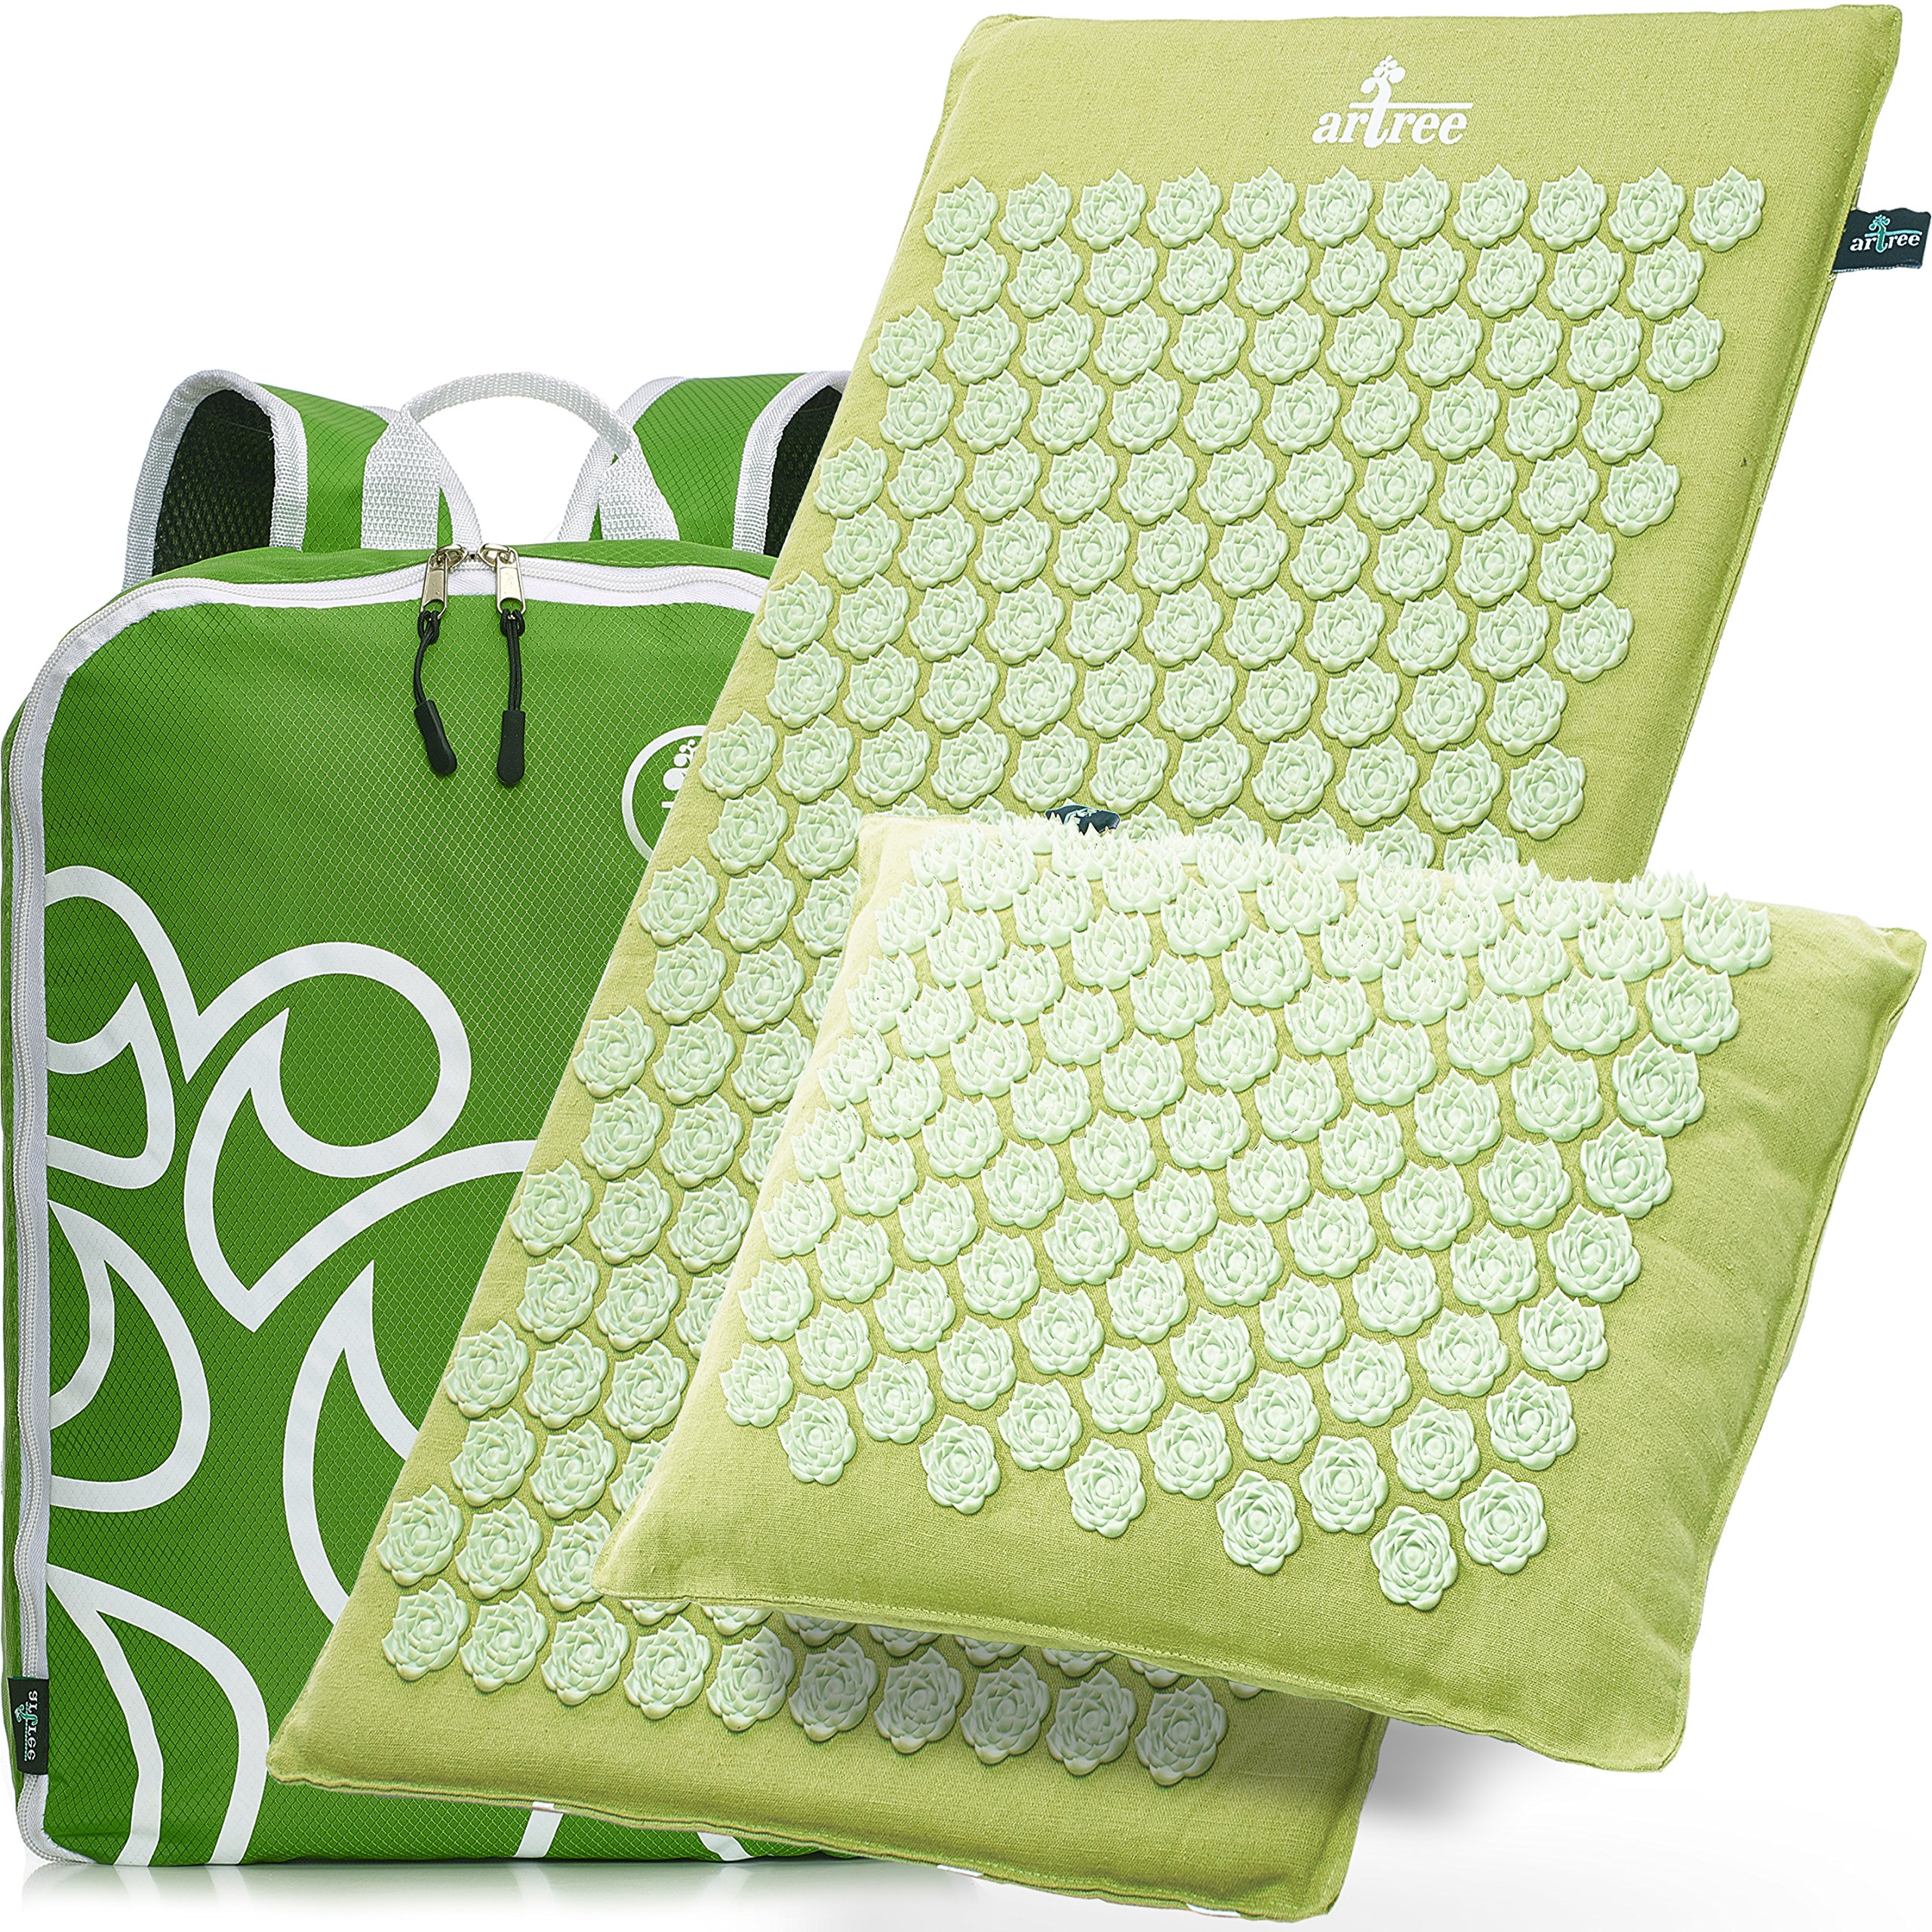 New Version Professional Acupressure Mat and Pillow Set Natural Linen – Best Acupuncture Mat Gift – Back and Neck Pain Relief Reflexology Mat – for Women and Men - Stress and Muscle Relief (Green)